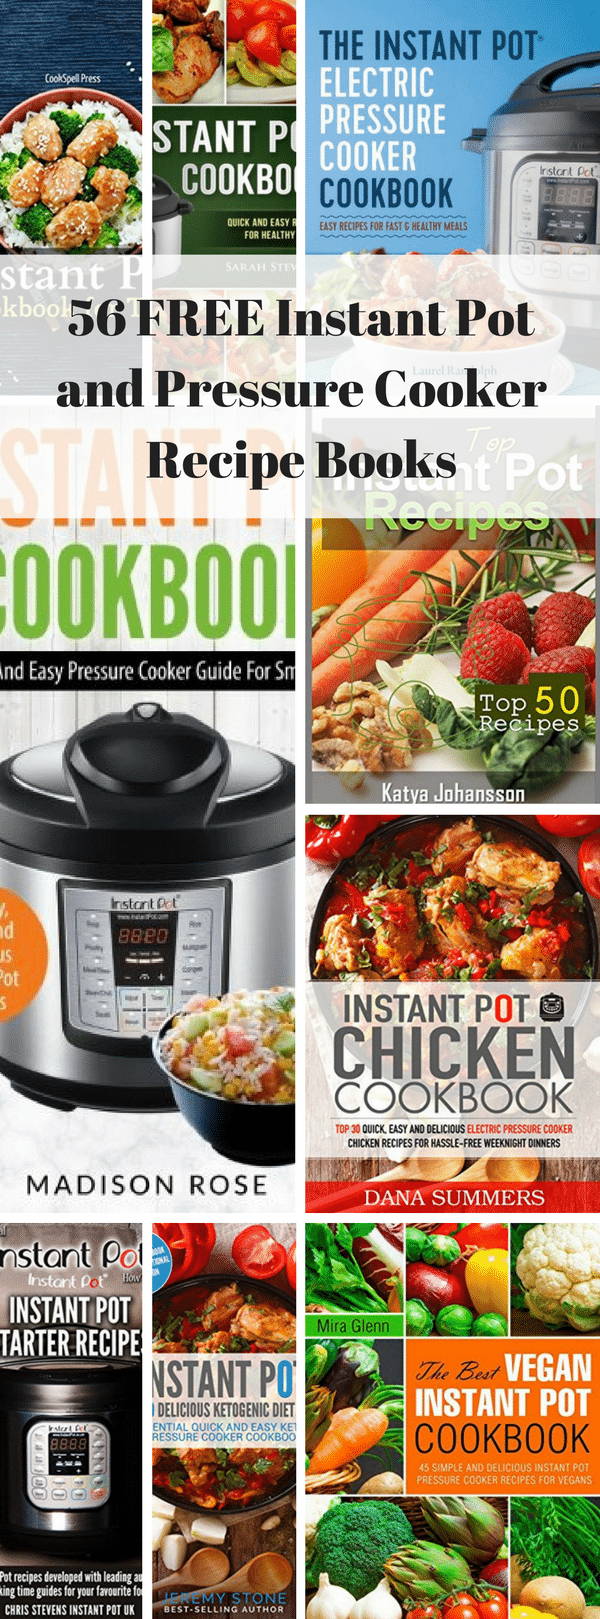 FREE Instant Pot and Pressure Cooker Recipe Books